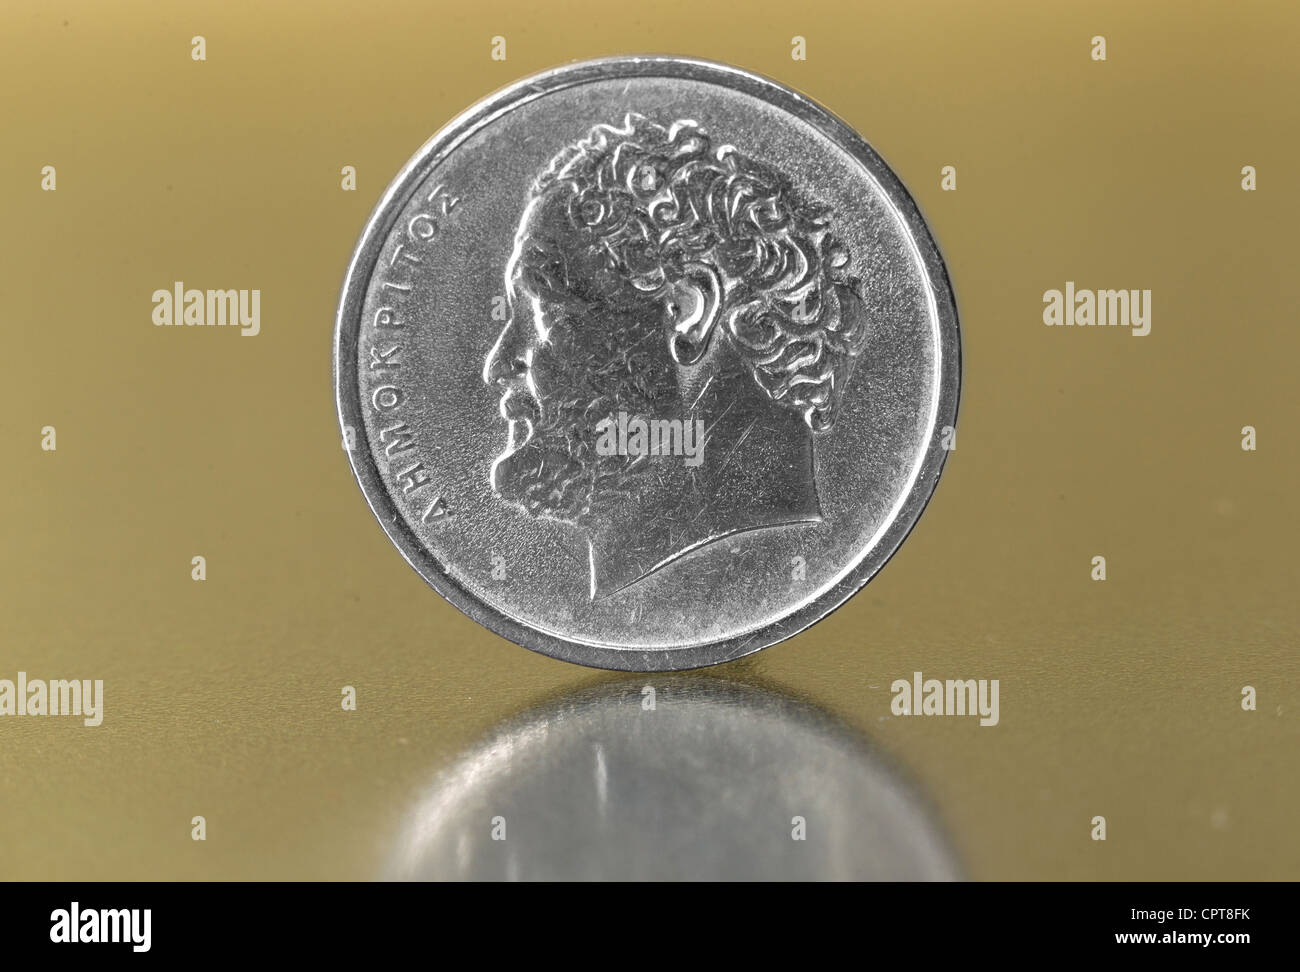 former Greek currency drachma, coin (CTK Photo/Petr Sznapka) - Stock Image